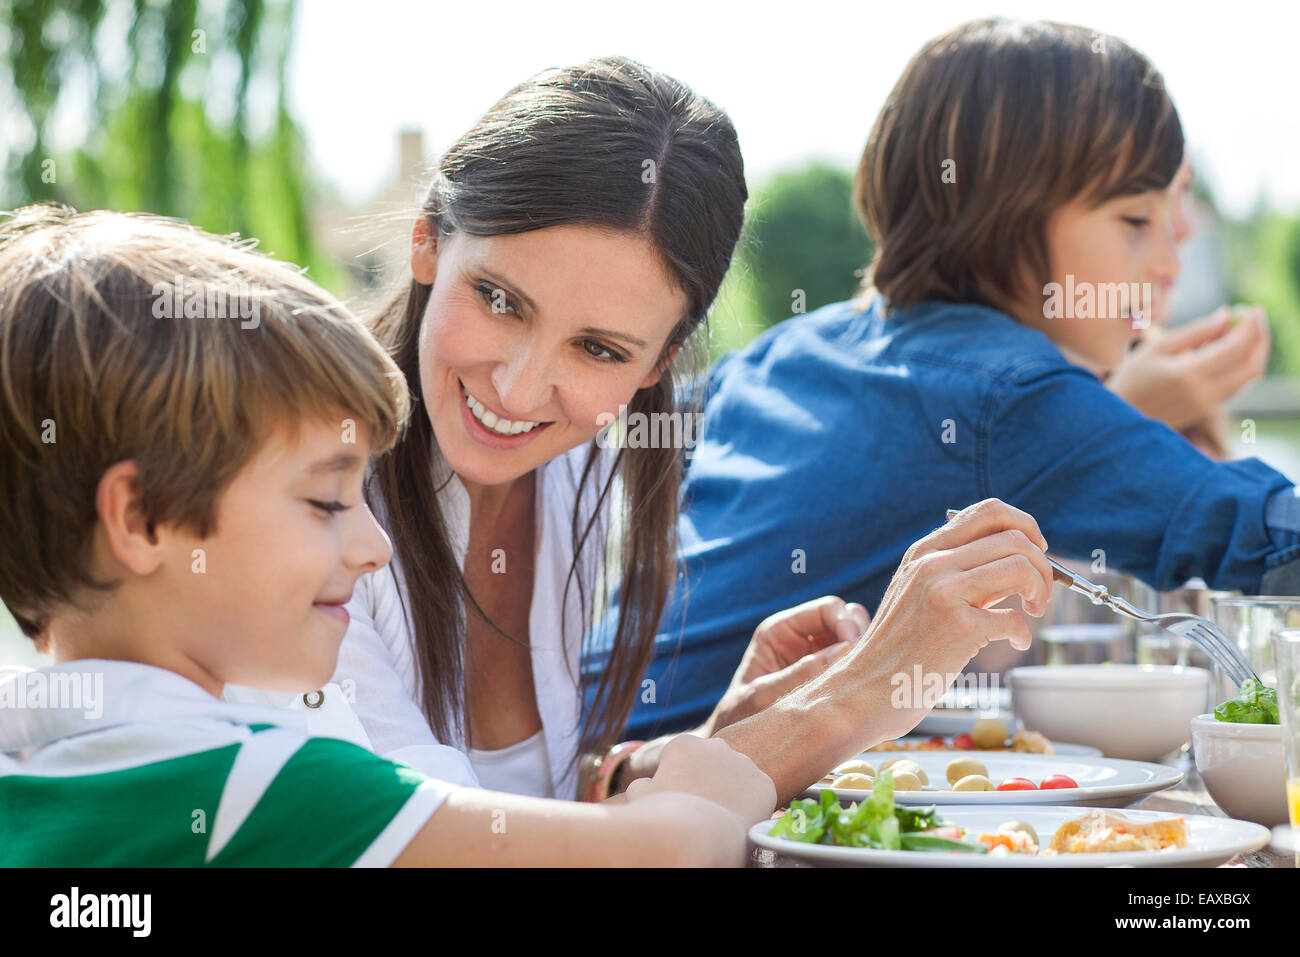 Family enjoying healthy meal outdoors - Stock Image